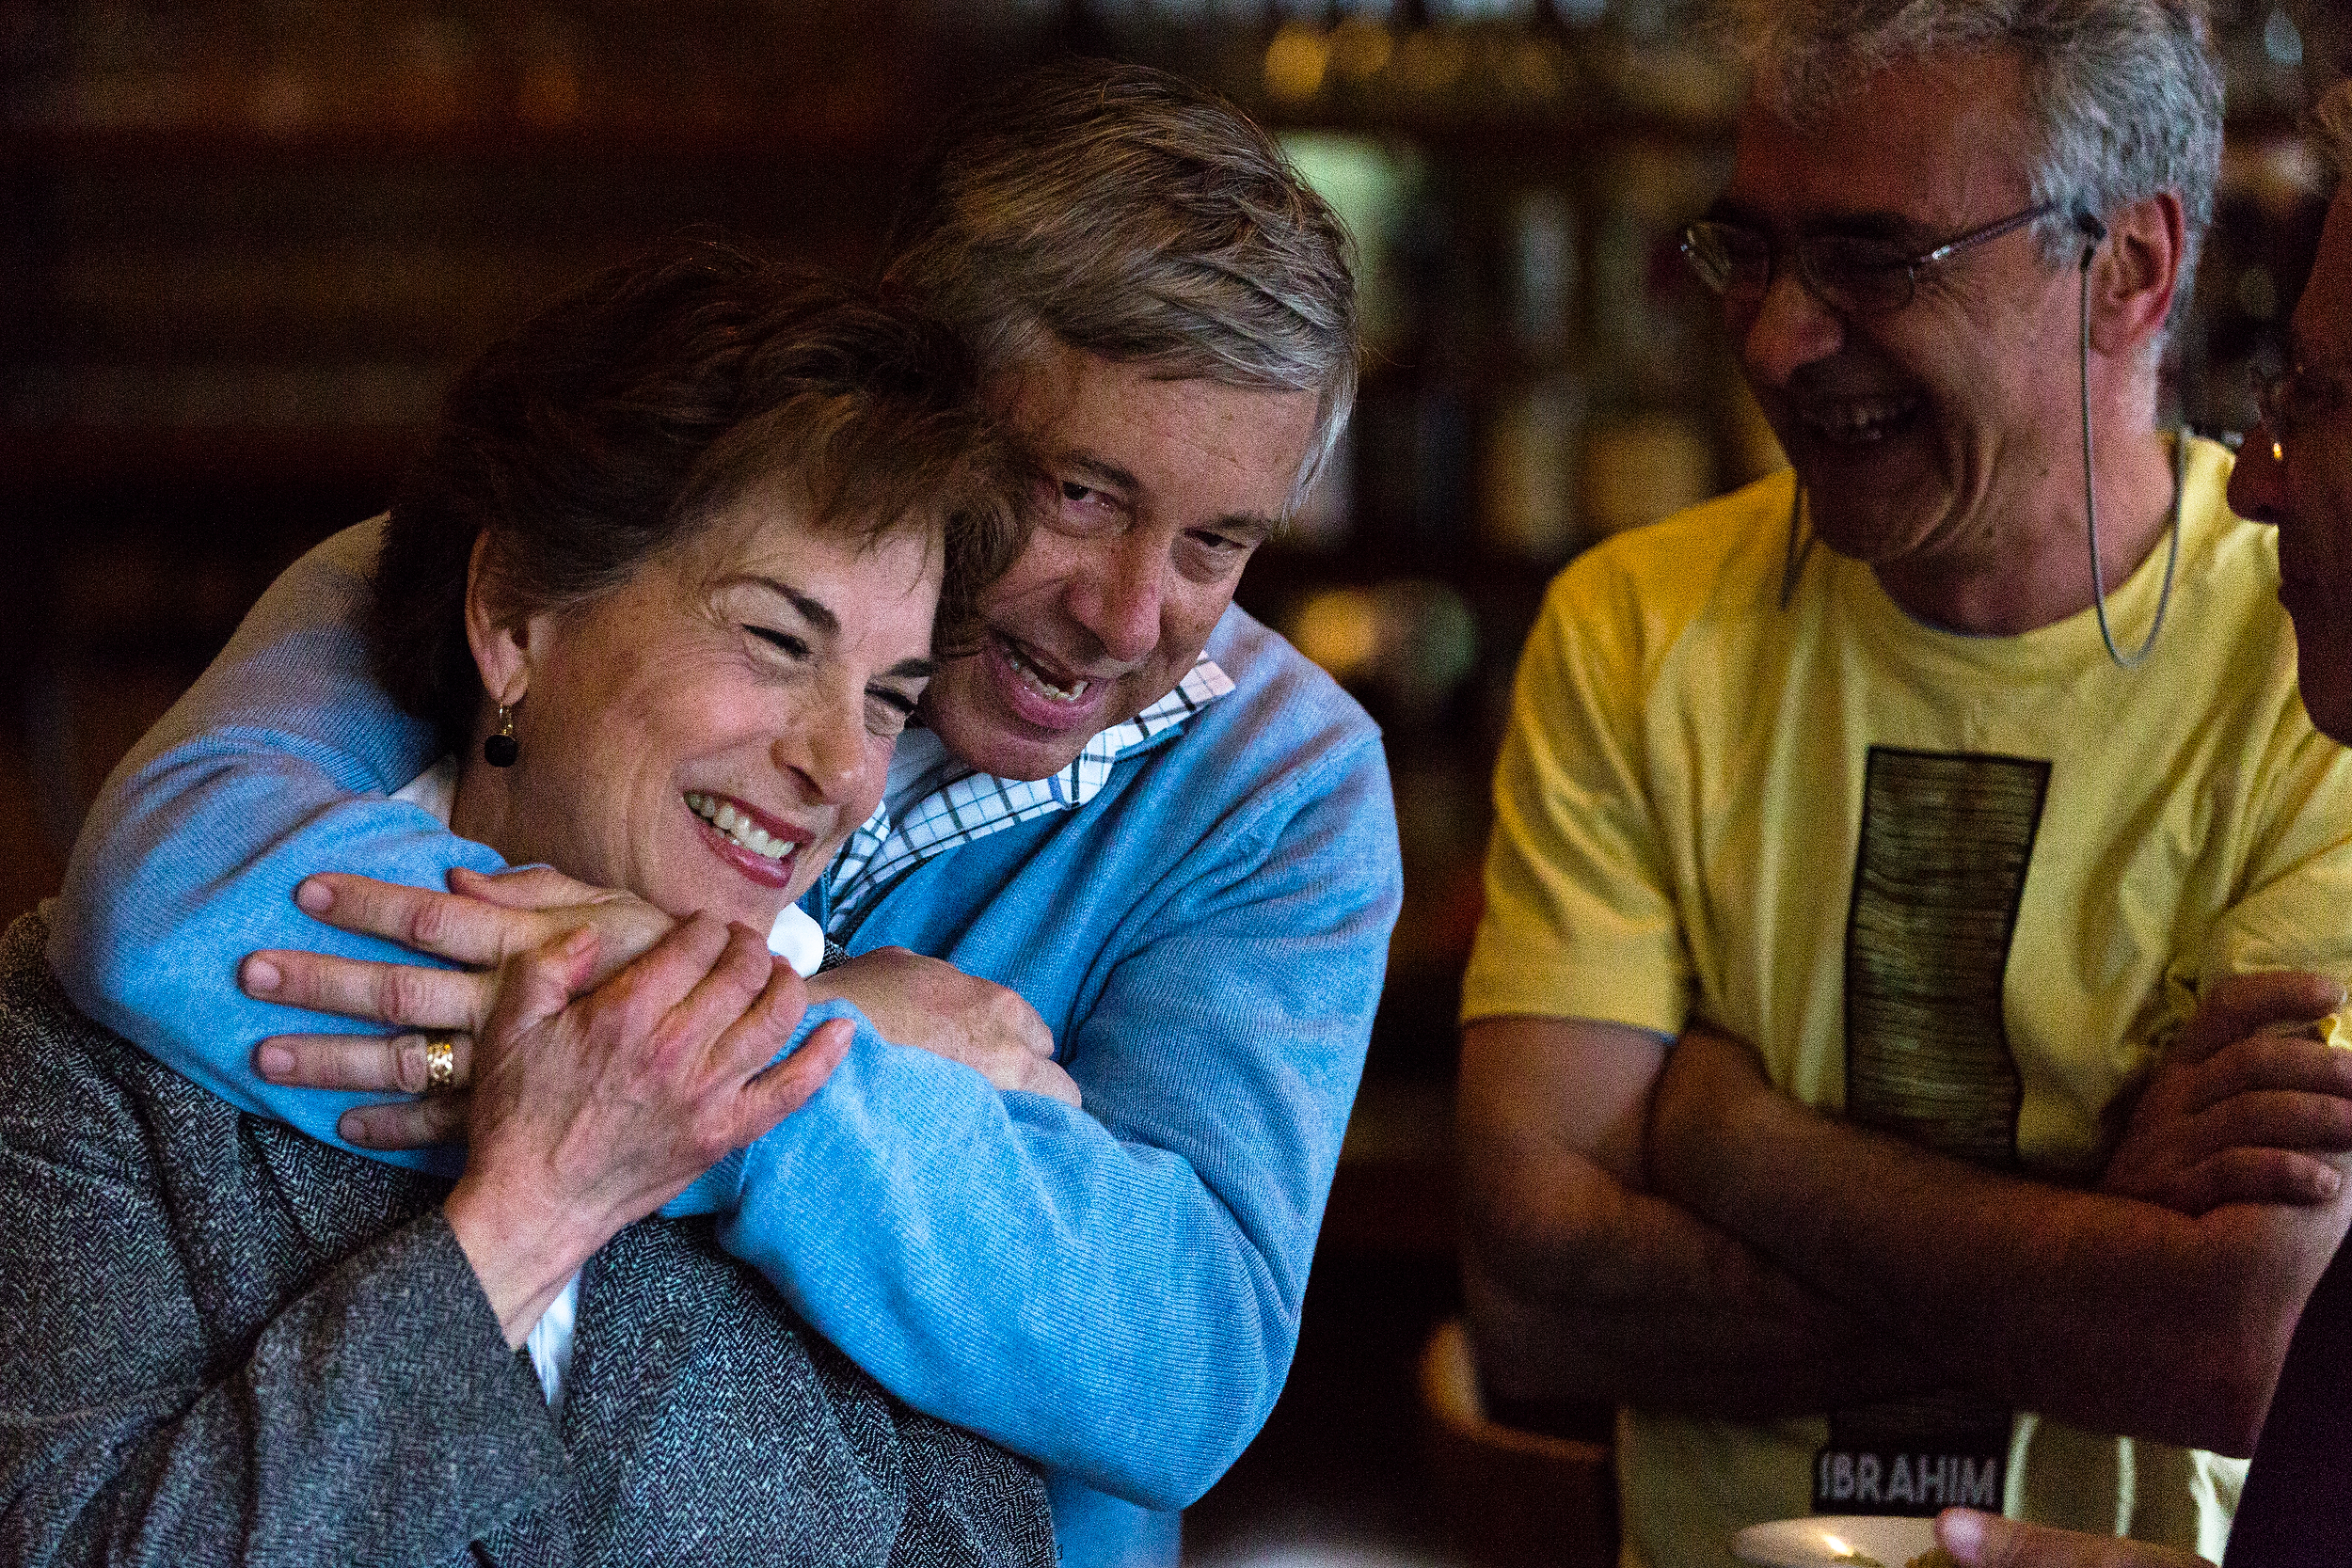 U.S. Rep Fred Upton, R-St. Joseph, and U.S. Rep. Jan Schakowsky, D-Illinois, celebrate the one-year deferral granted to Ibrahim Parlak and a Kurdish New Year at Caf� Gulistan Wednesday, March 30, 2016 in Harbert, Mich. (Bryan Bennett / Kalamazoo Gazette)